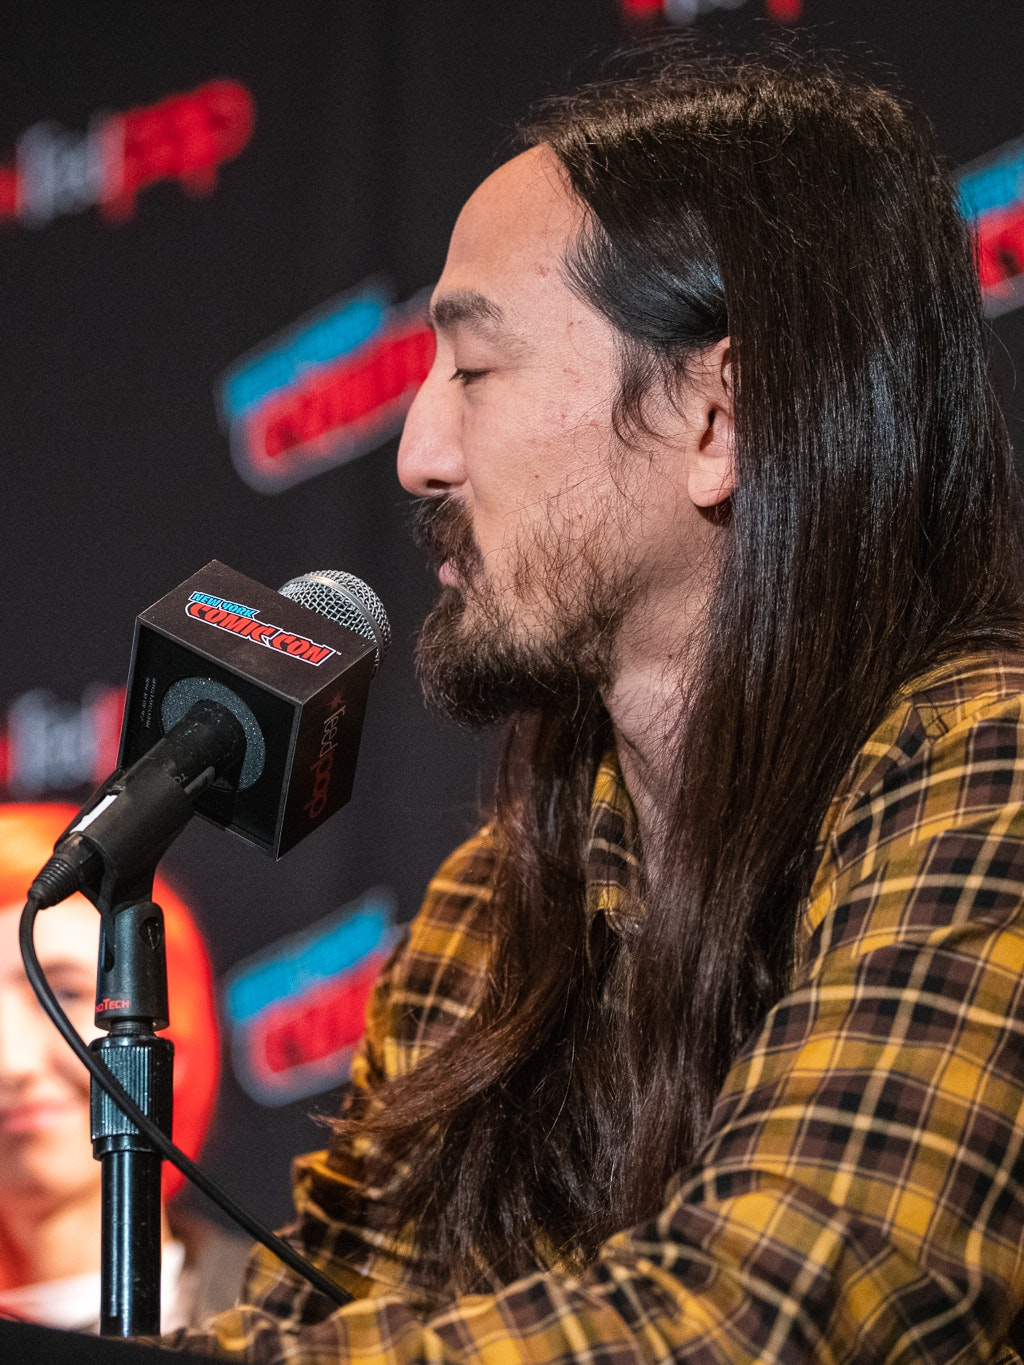 Steve Aoki Will Be Cryogenically Frozen — But For Now He's Here to Sell Some Comics